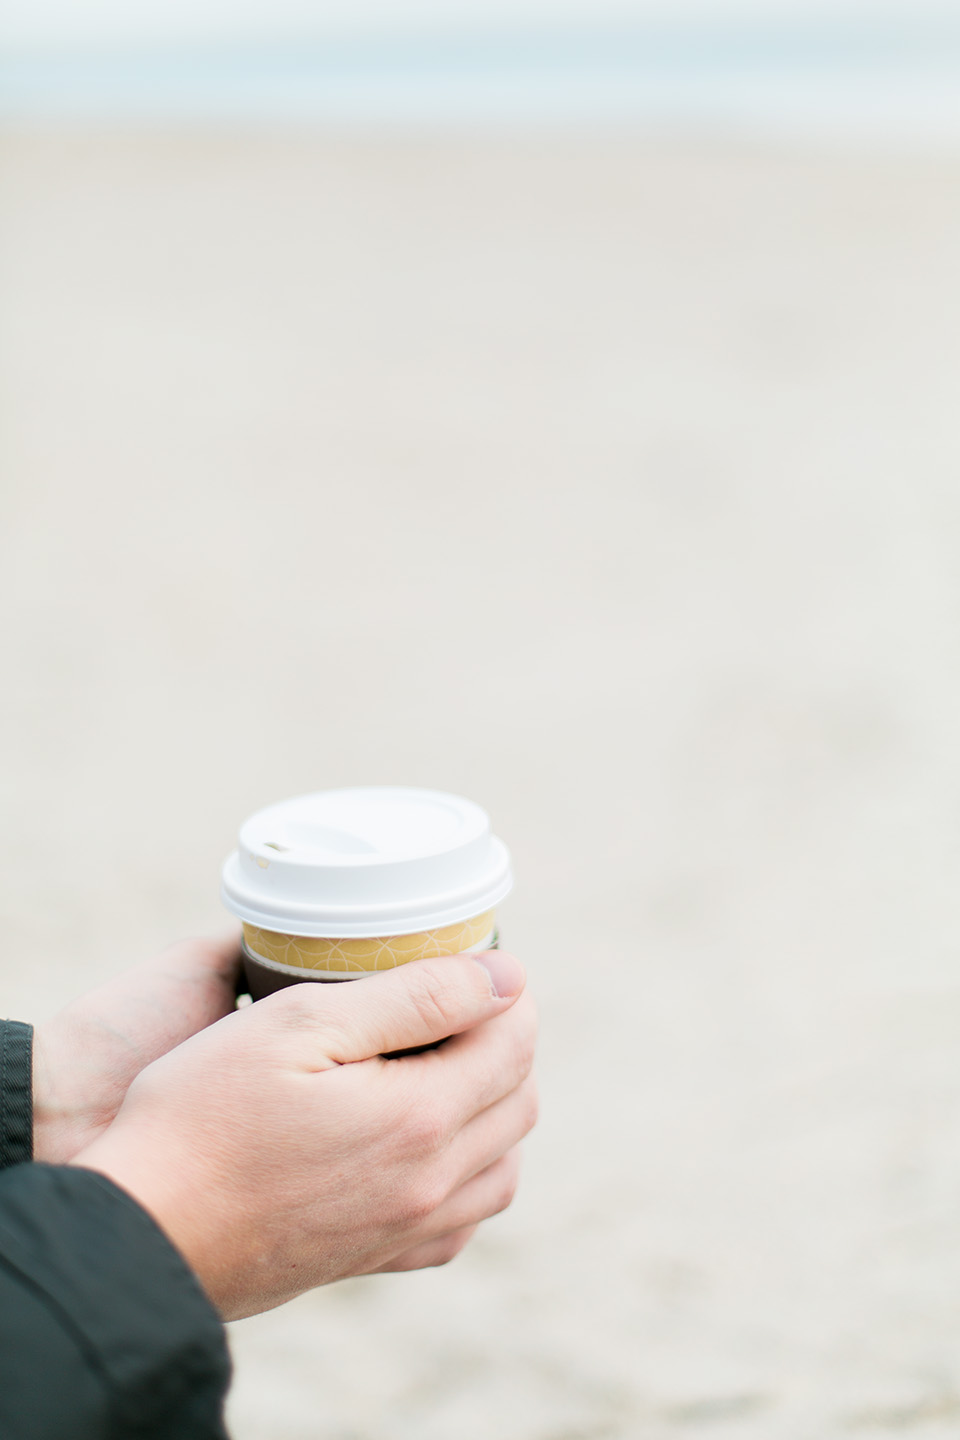 Image of a man holding a cup of coffee with a lid on a beach at Omni Amelia Island Plantation Resort.